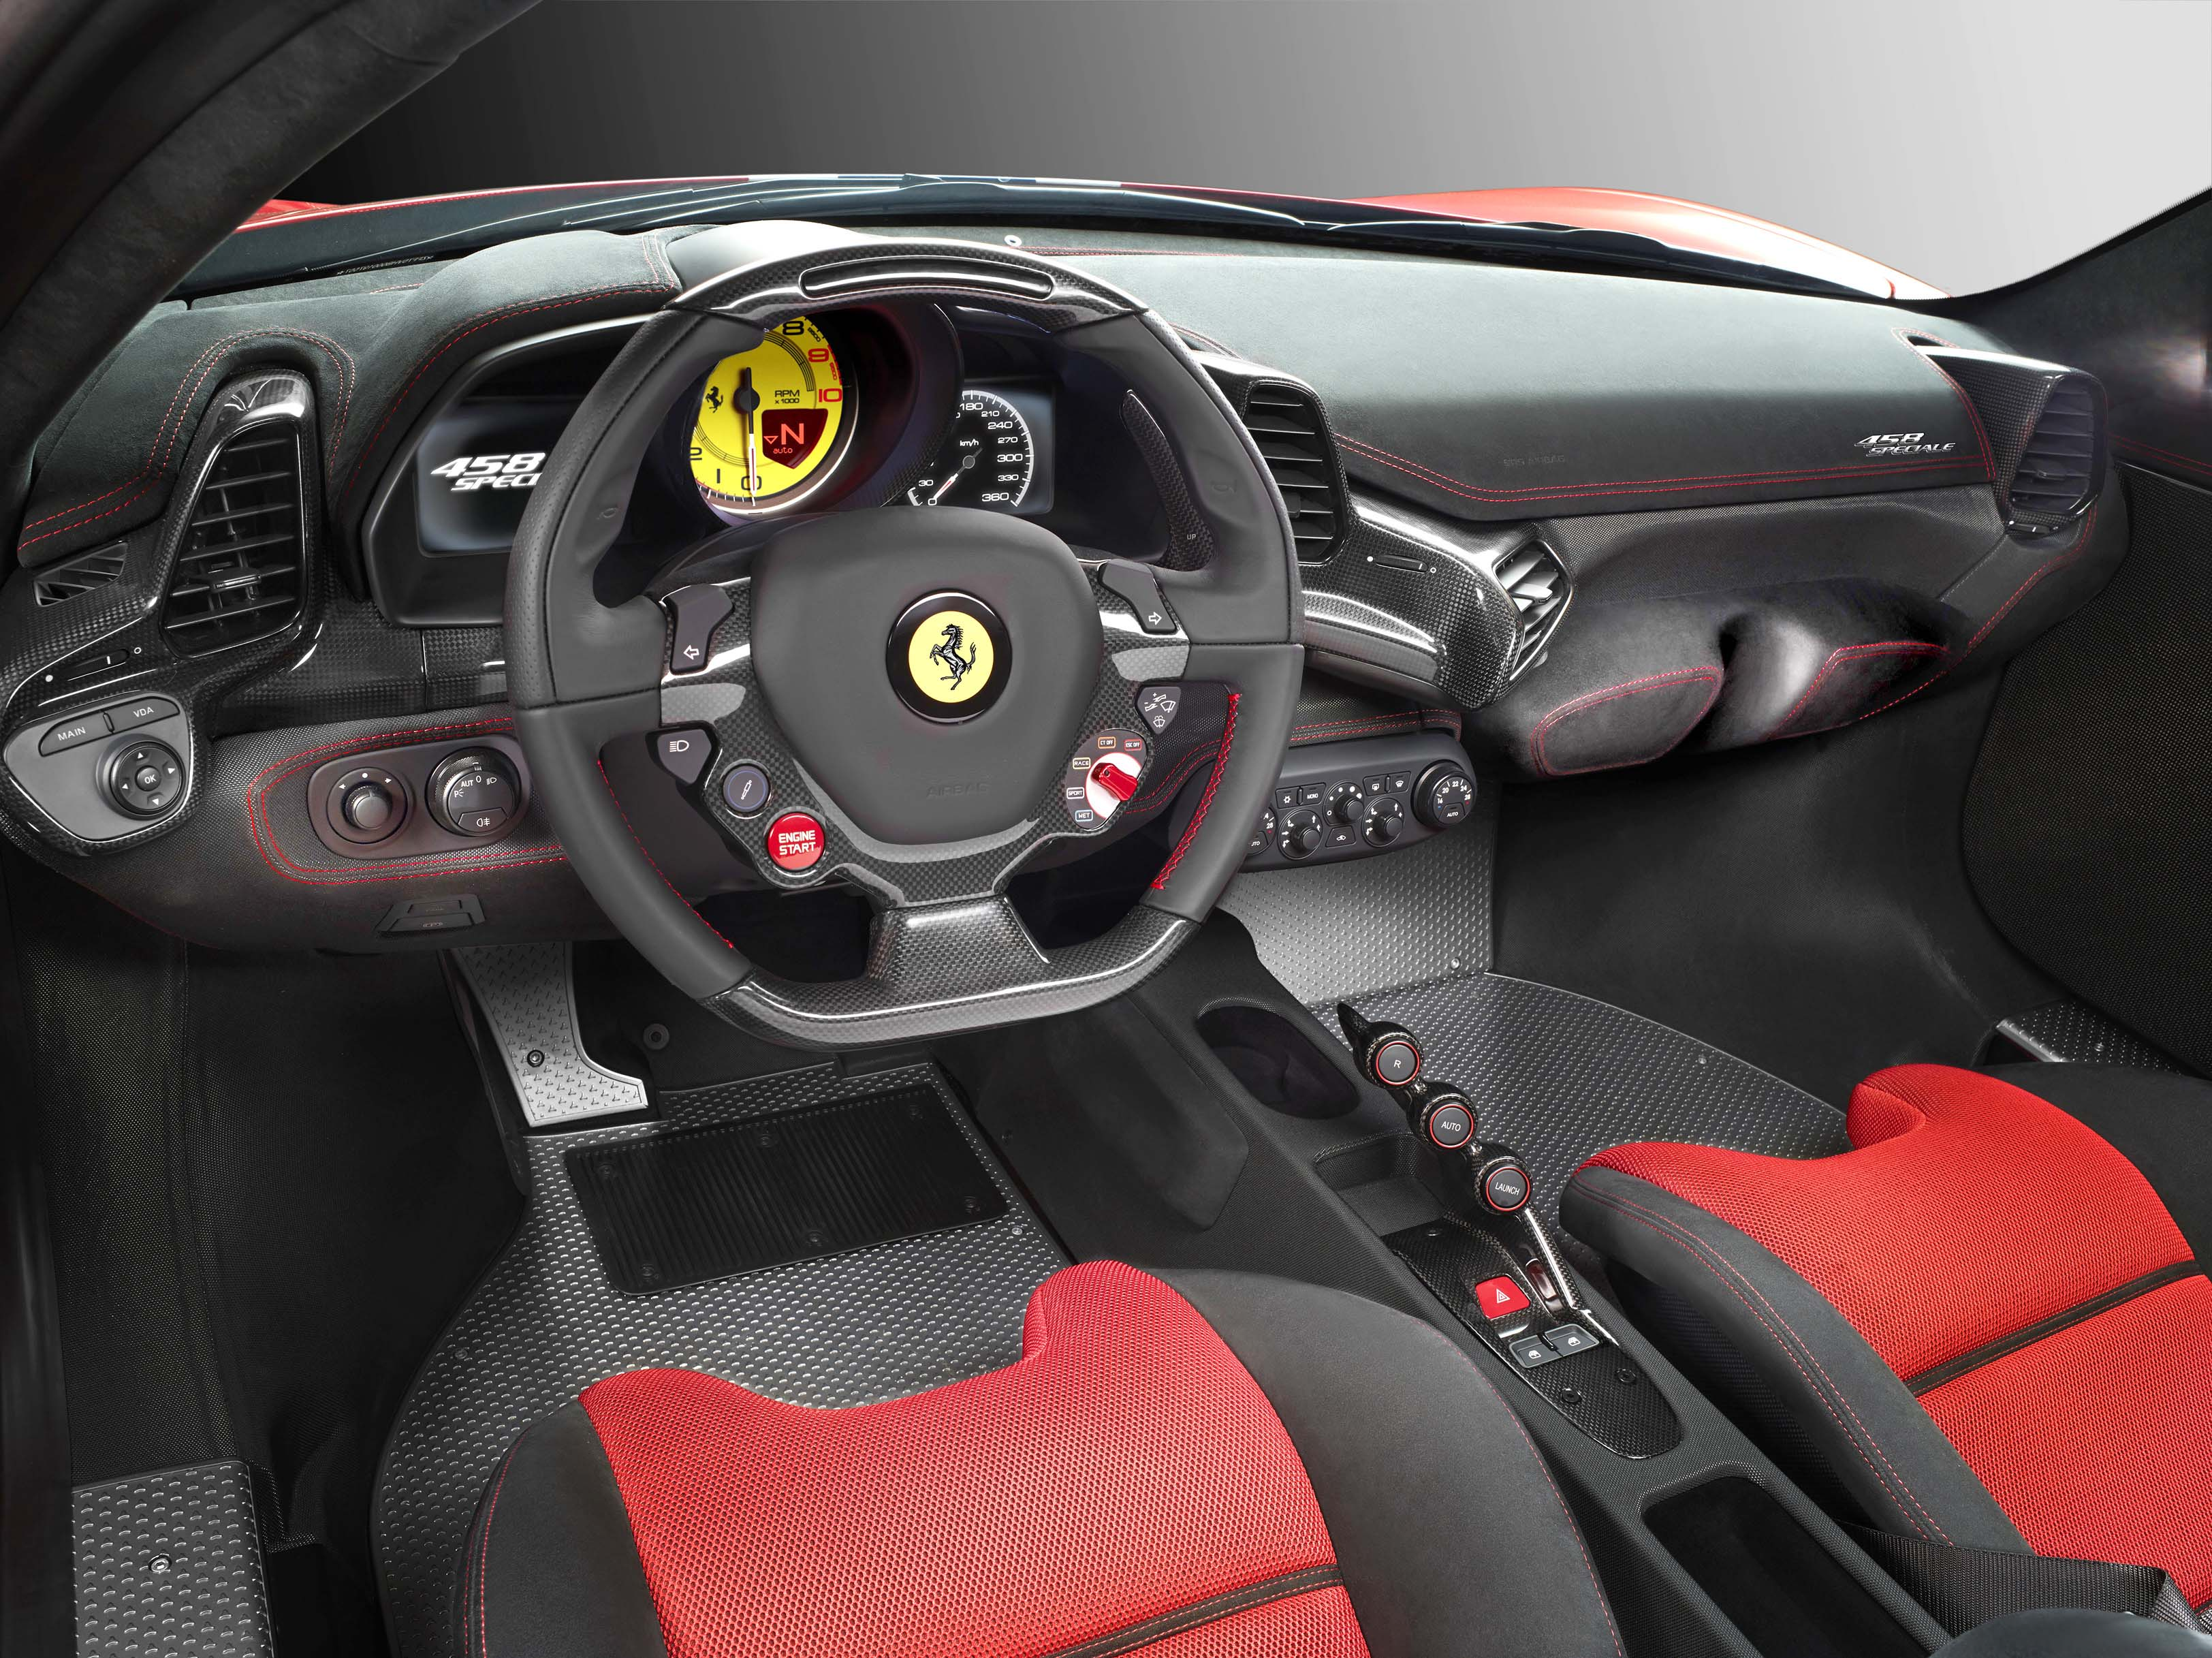 ferrari 458 italia 2016 front design wallpaper motor trends - 2016 Ferrari 458 Replacement